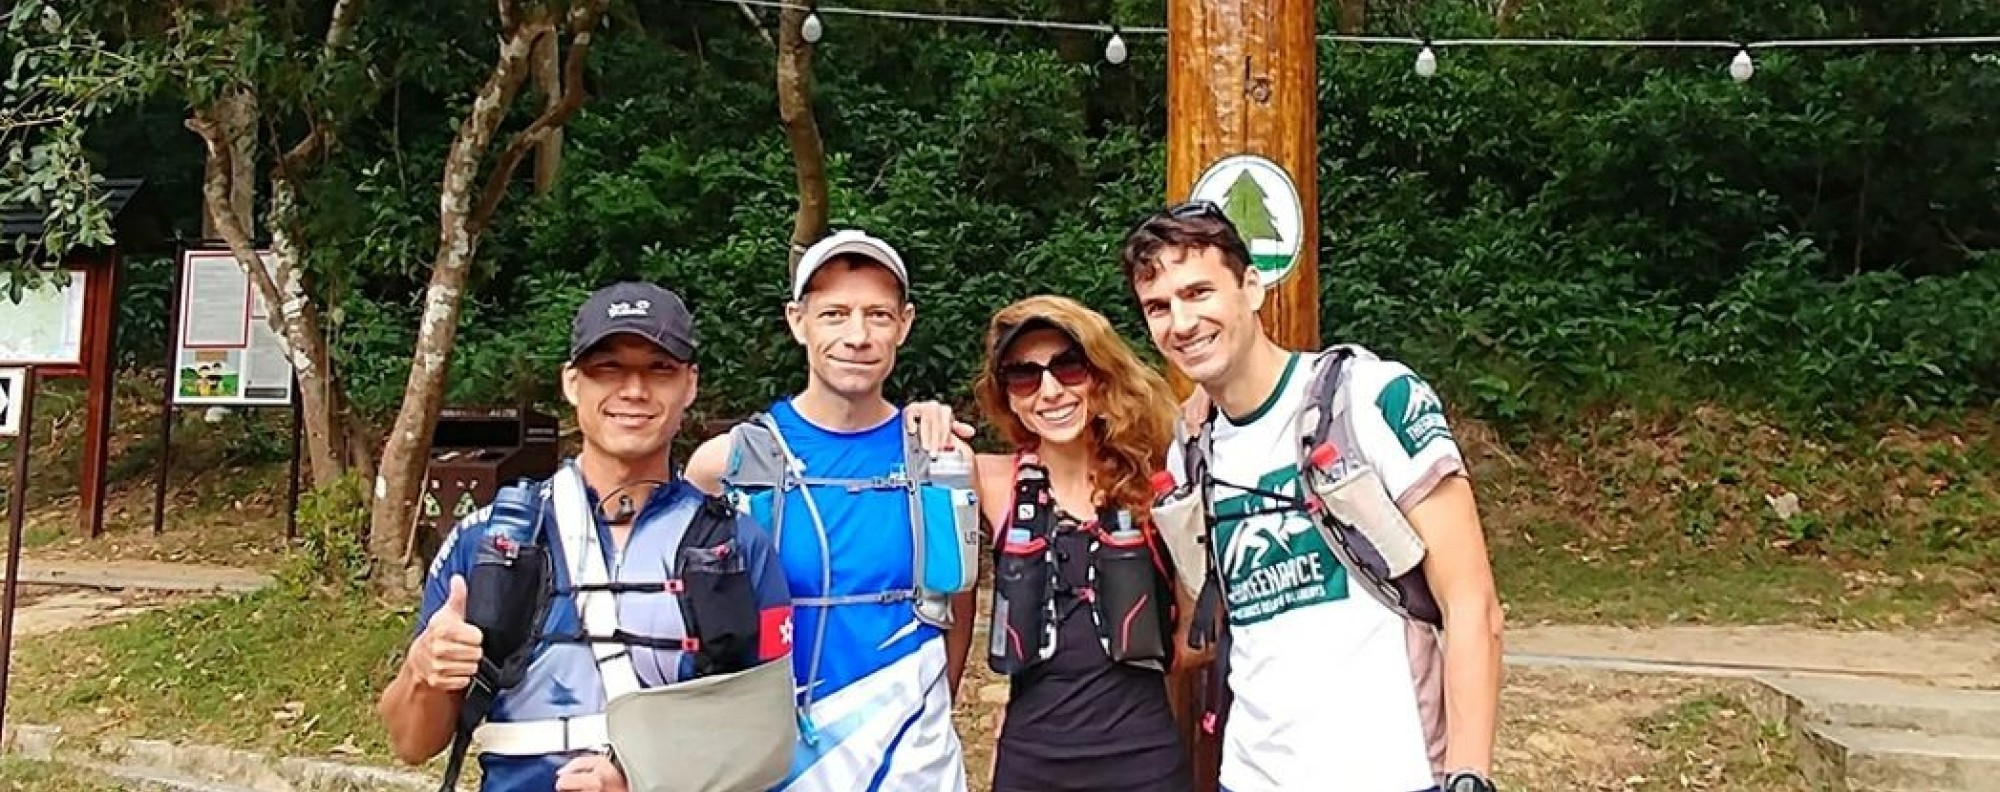 Vic So Lok is taking on the Trailwalker, despite a recent operation, with teammates (from left) Rupert Chamberlain, Emilie Saint Pe and Michael Skobierski. Photos: KPMG